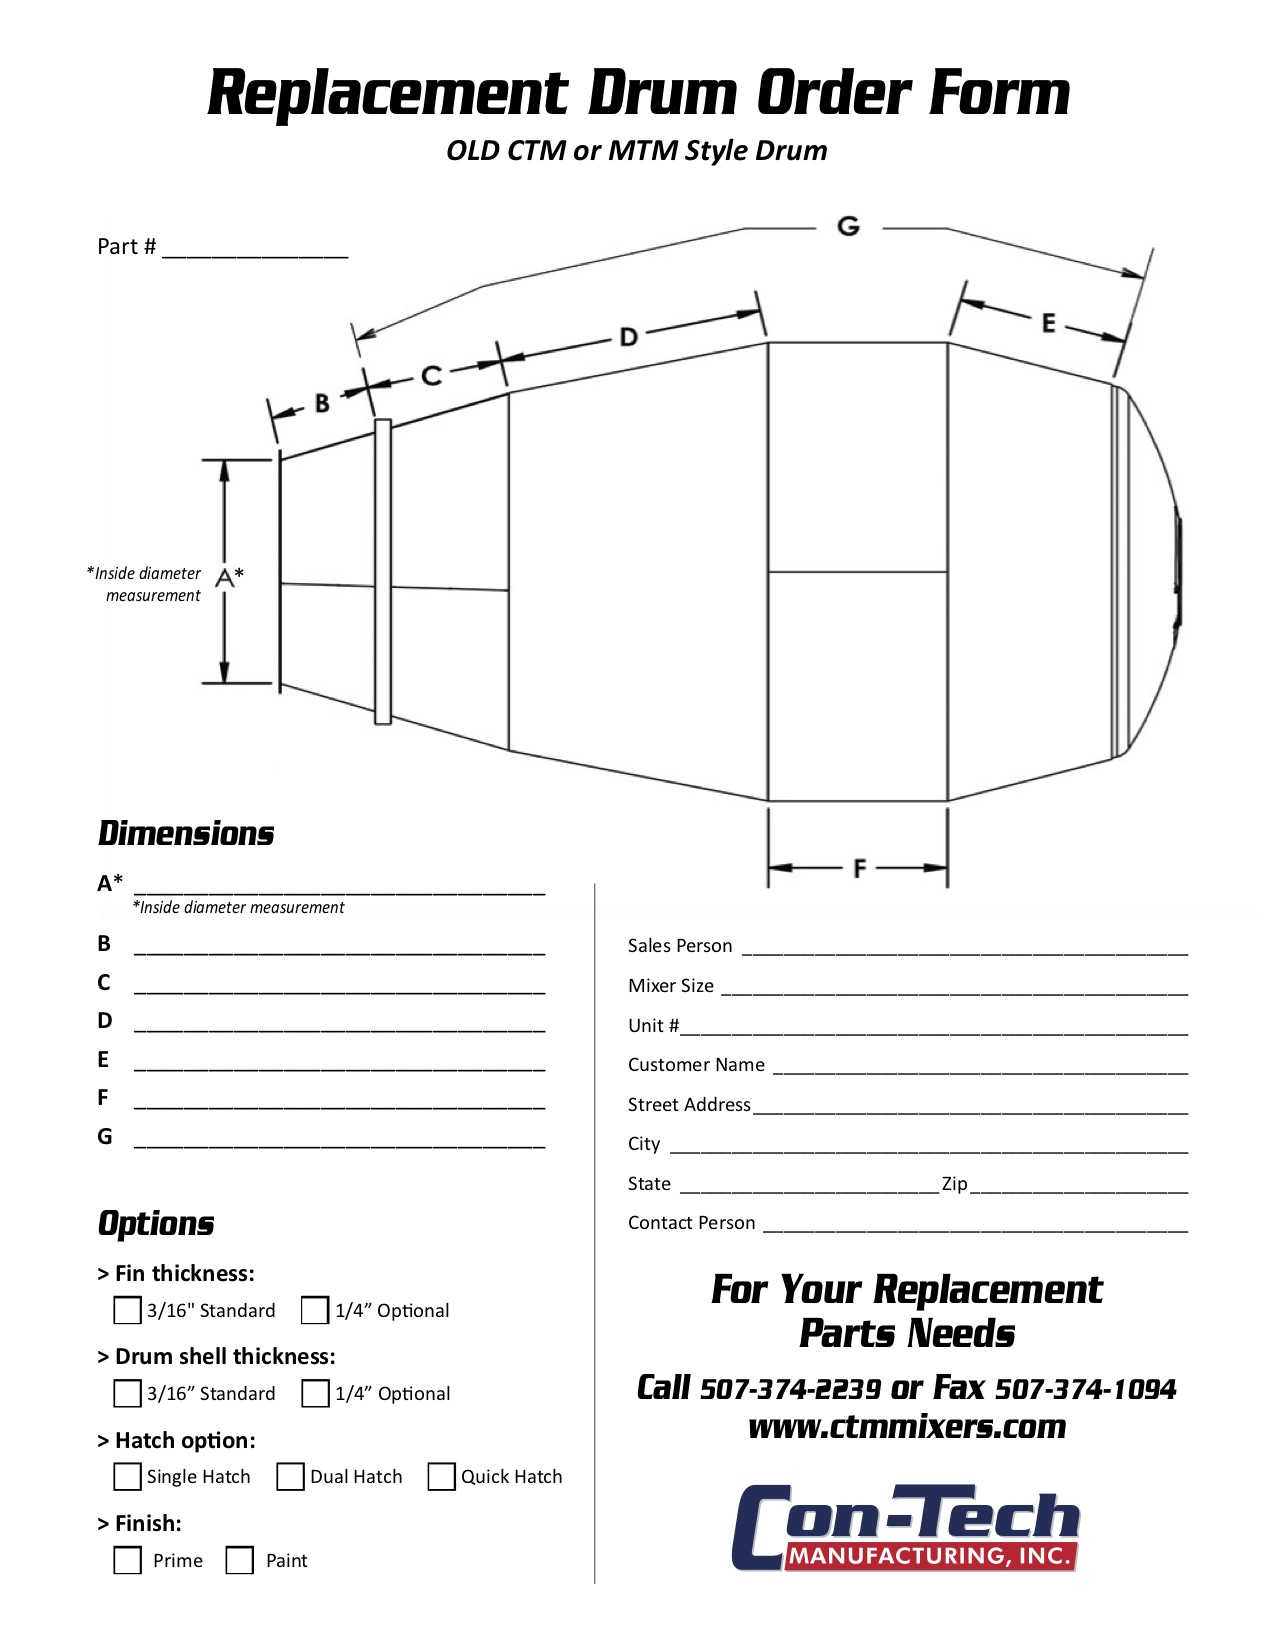 Old Style CTM or MTM Replacement Order Form